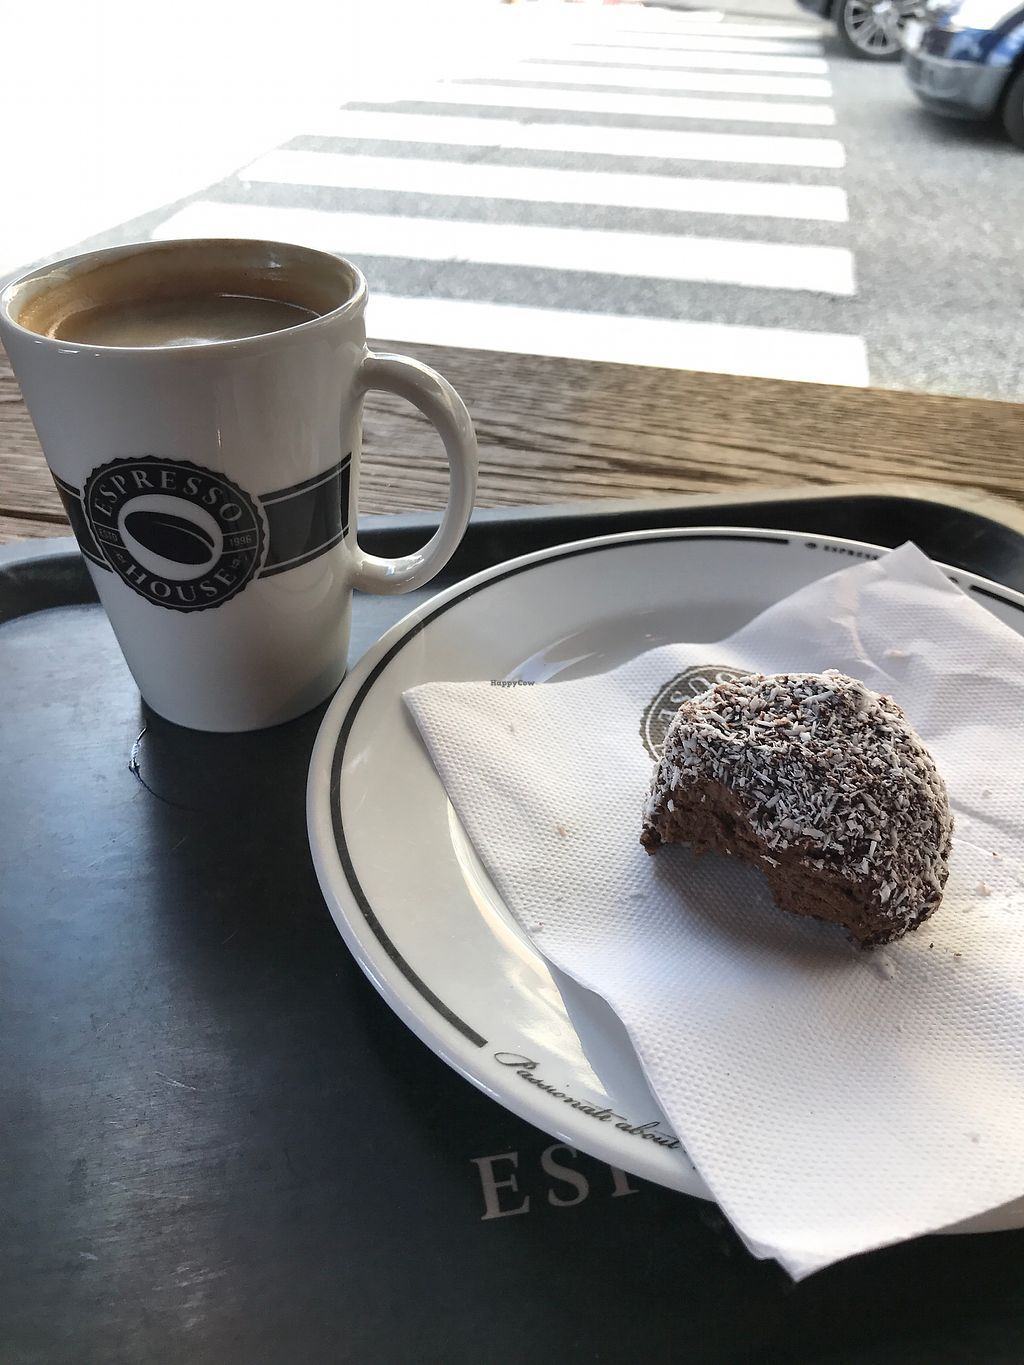 "Photo of Espresso House  by <a href=""/members/profile/KatrinBrever"">KatrinBrever</a> <br/>Swedish Chocolate Ball & Coffee Americano <br/> August 21, 2017  - <a href='/contact/abuse/image/83743/295088'>Report</a>"